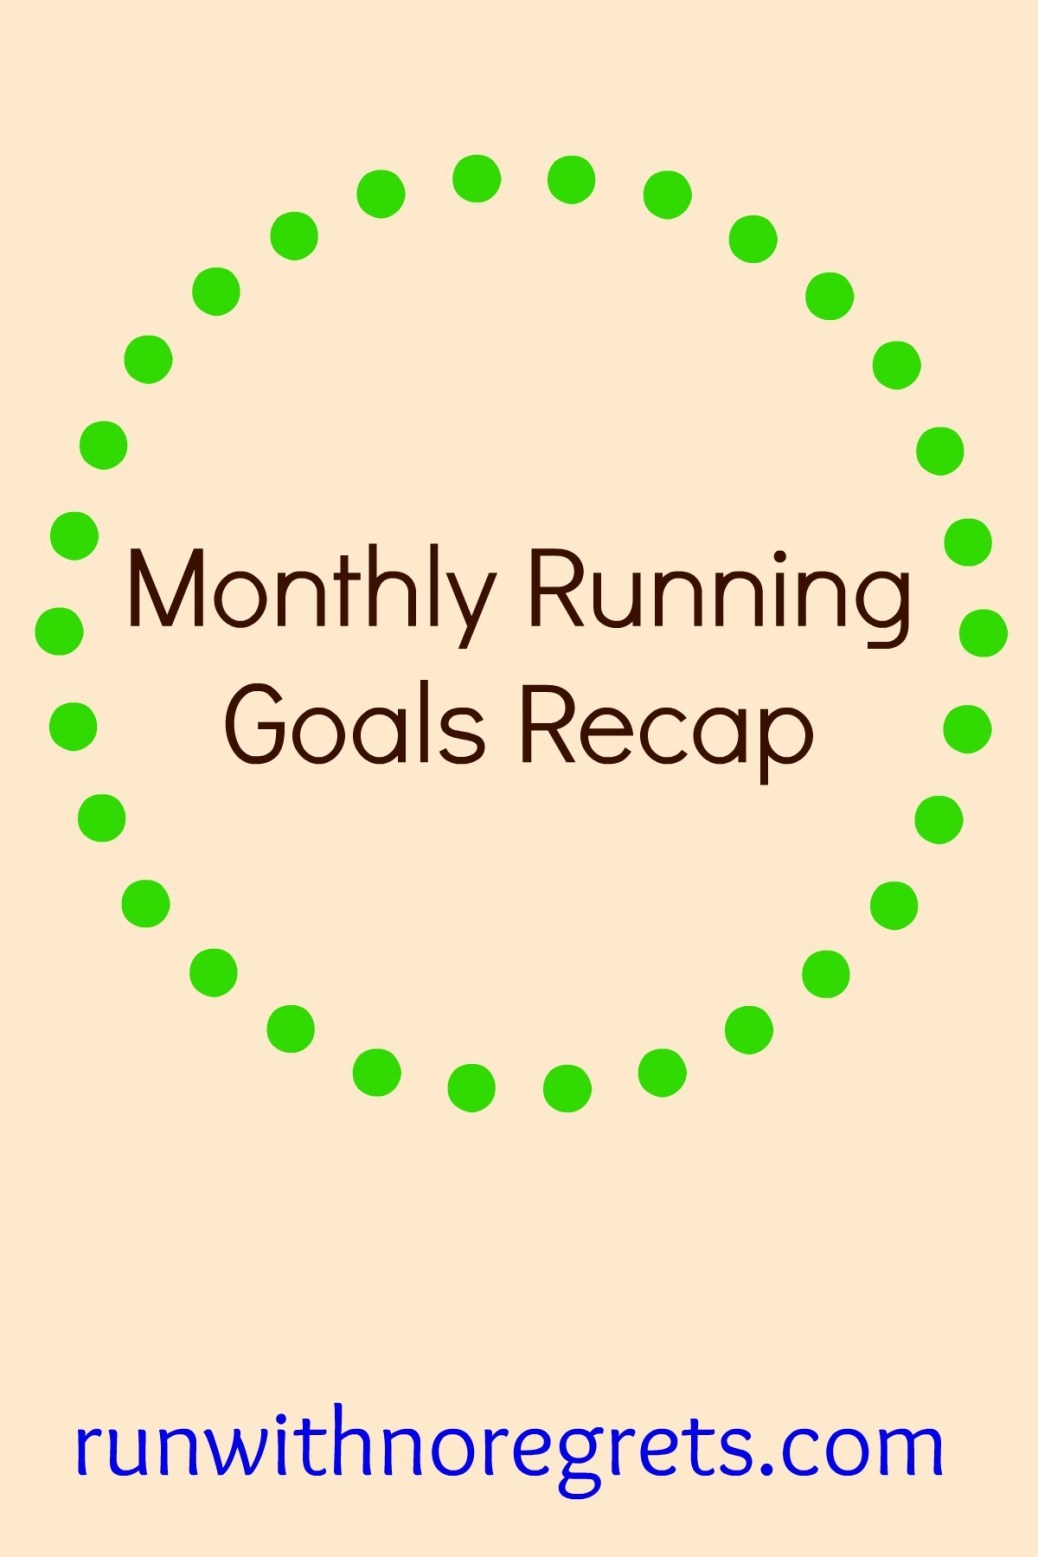 Every month I've been sharing my running goals. Check it out and more running and fitness fun at runwithnoregrets.com!